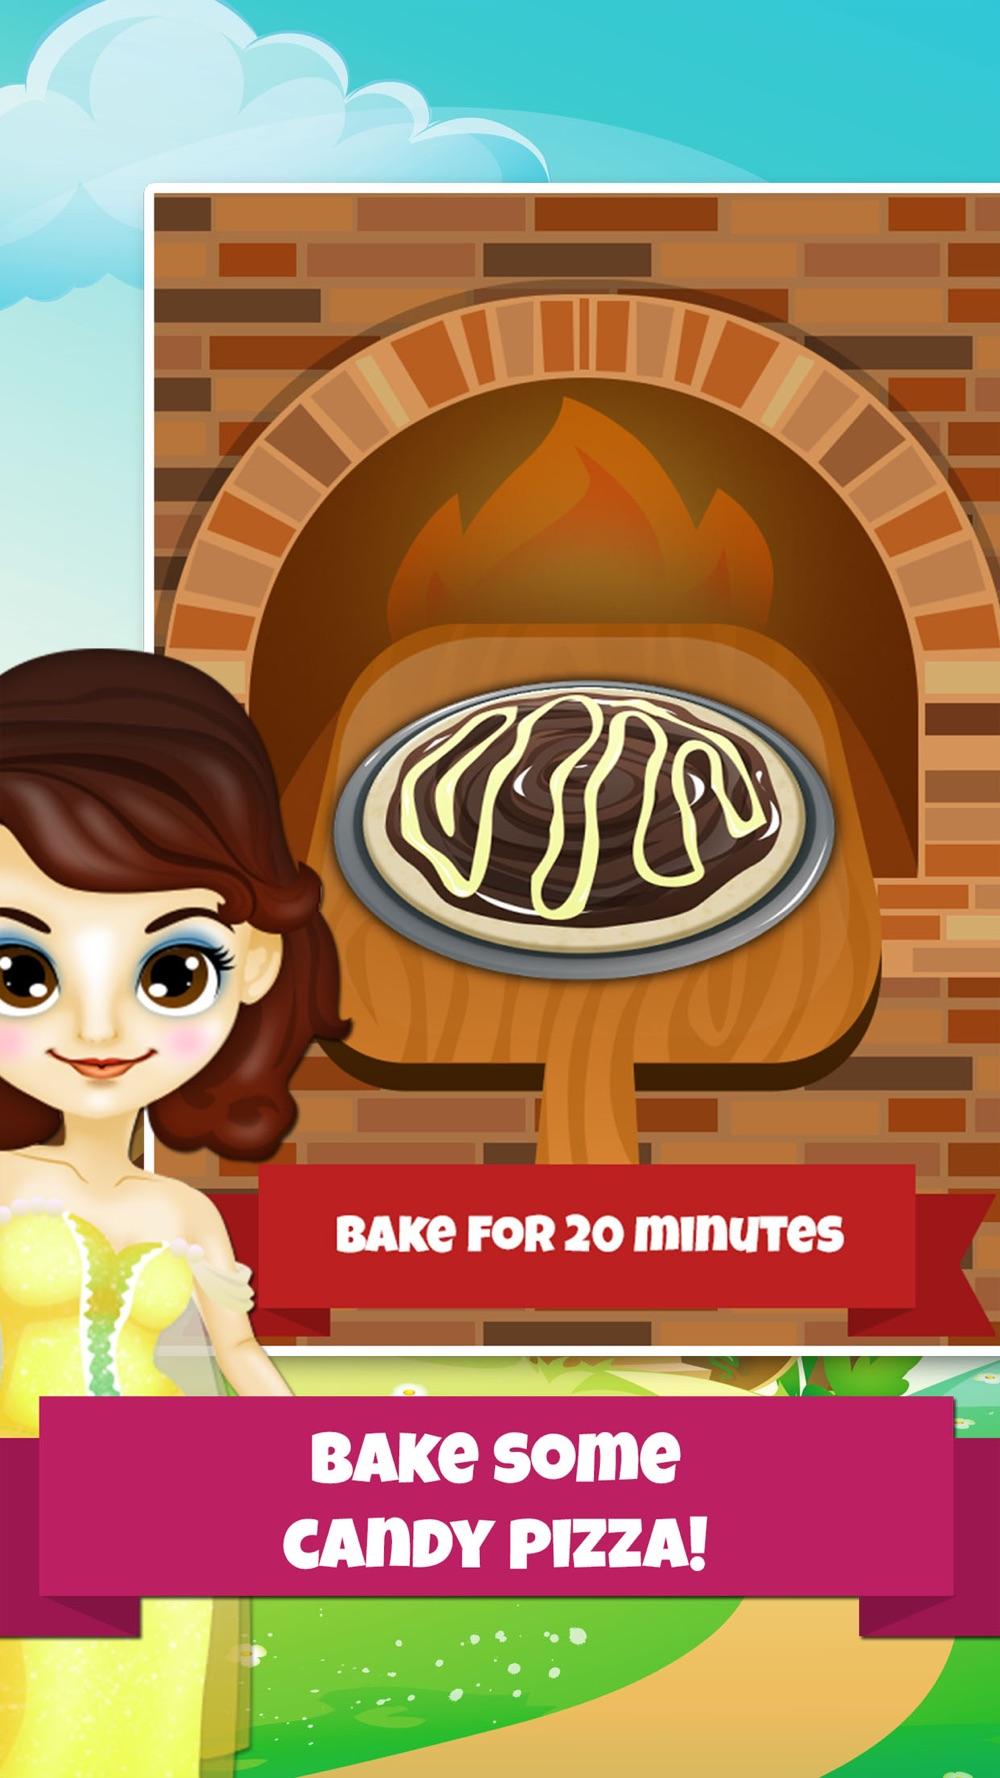 Pizza Dessert Maker Salon – Candy Food Cooking & Cake Making Kids Games for Girl Boy! Cheat Codes